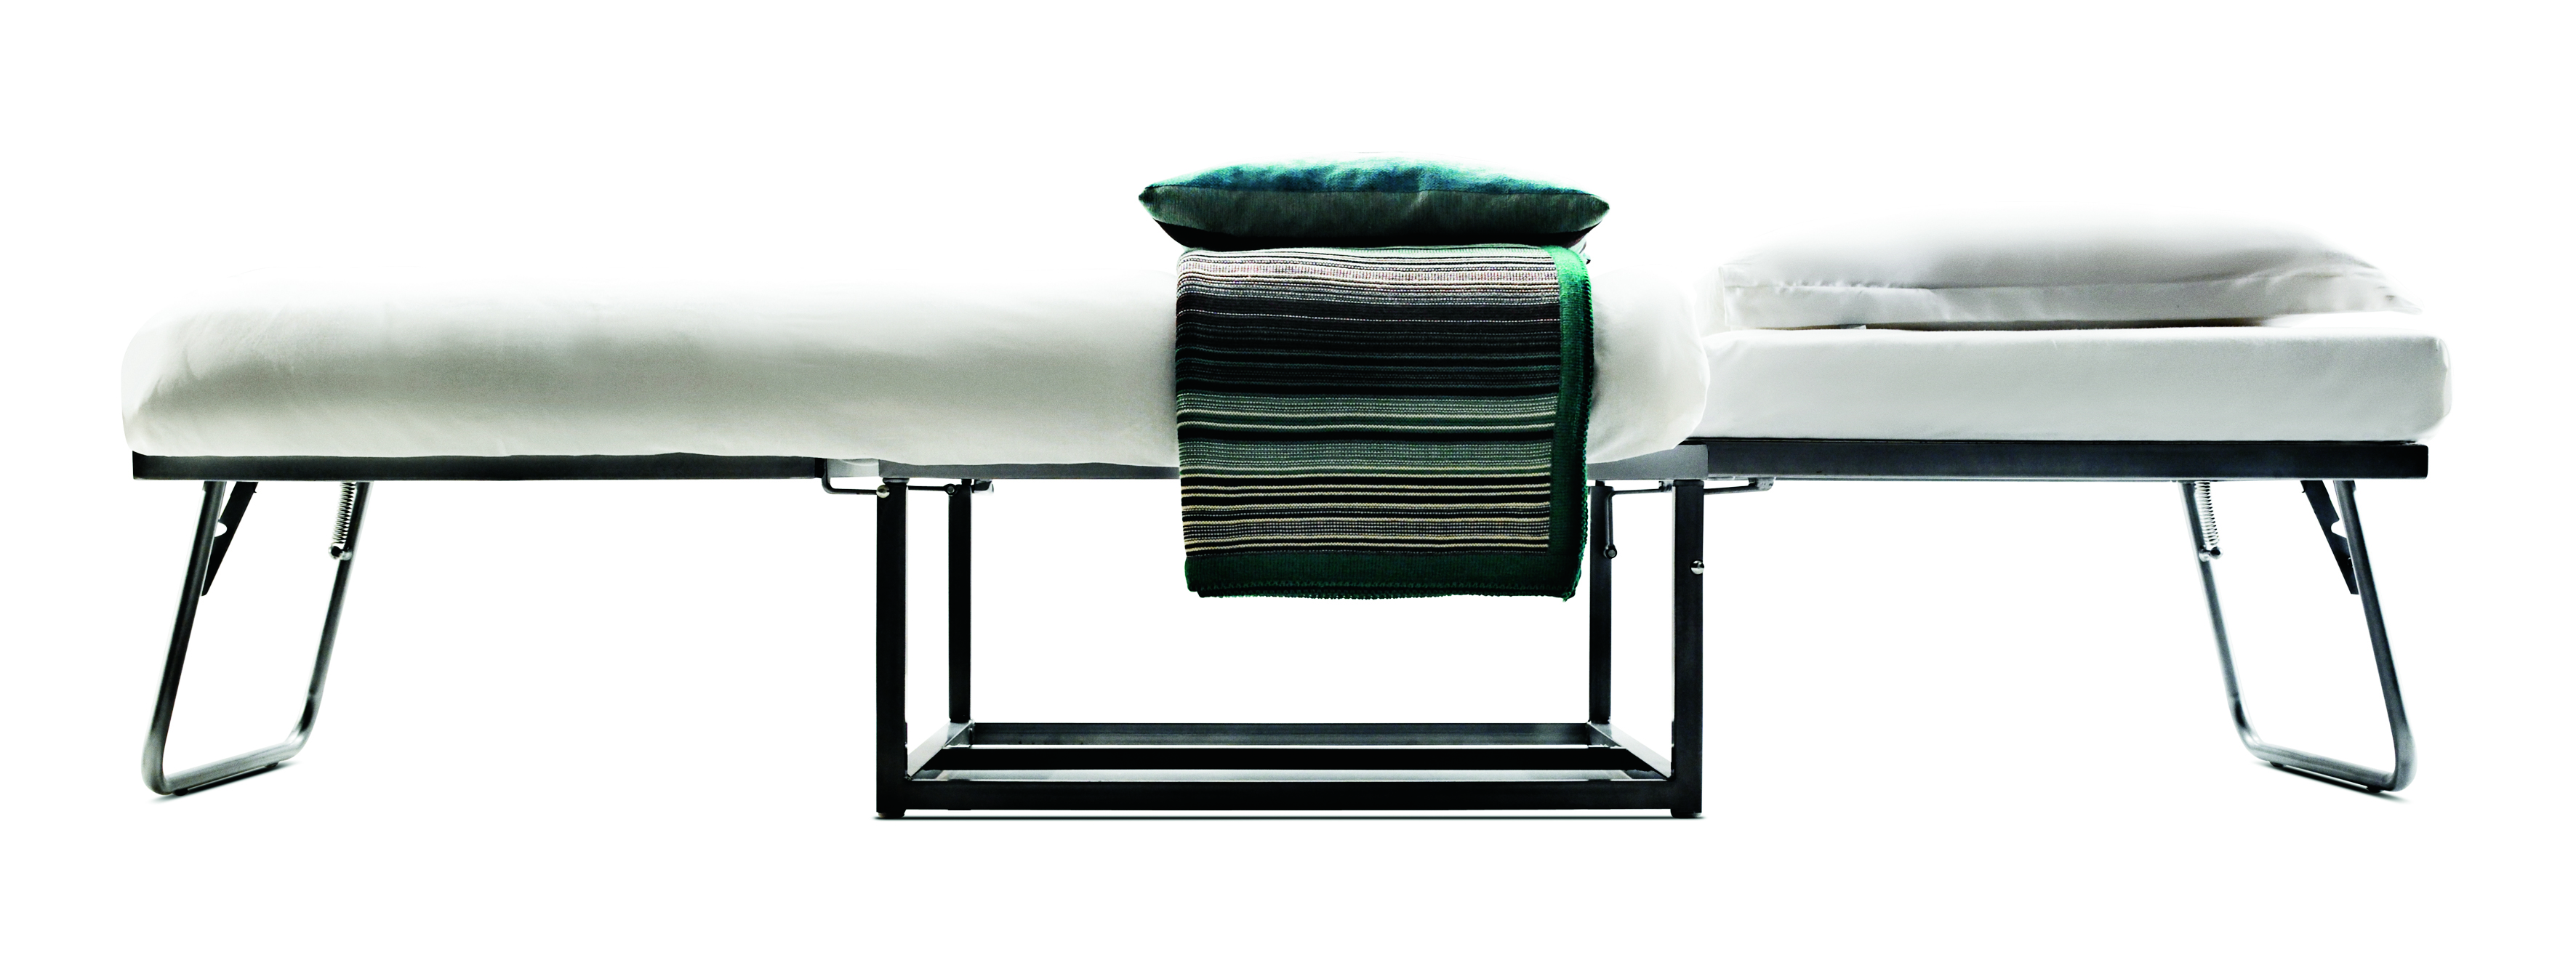 good quality sofa bed singapore wall beds with boconcept review home co